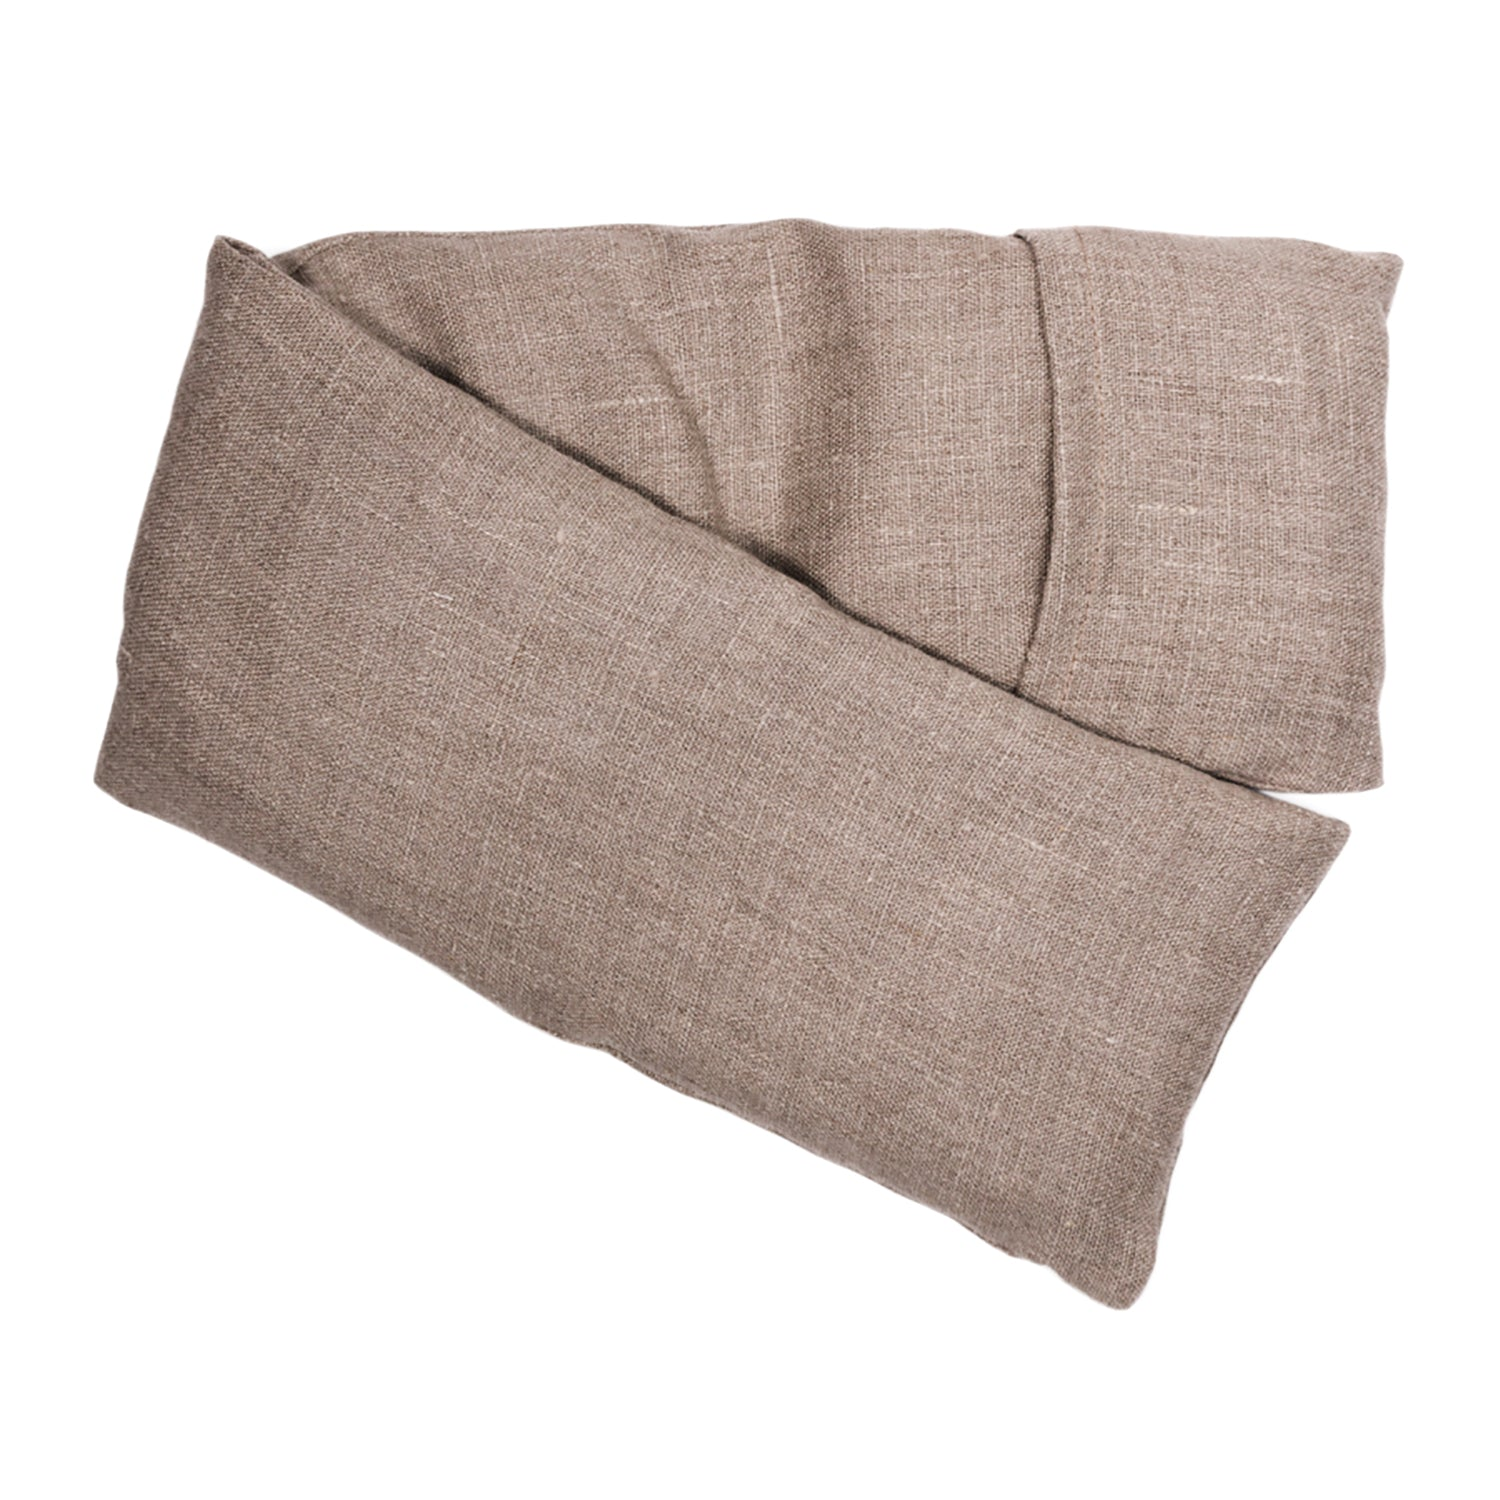 Linen - Natural Hot/Cold Flaxseed Pack